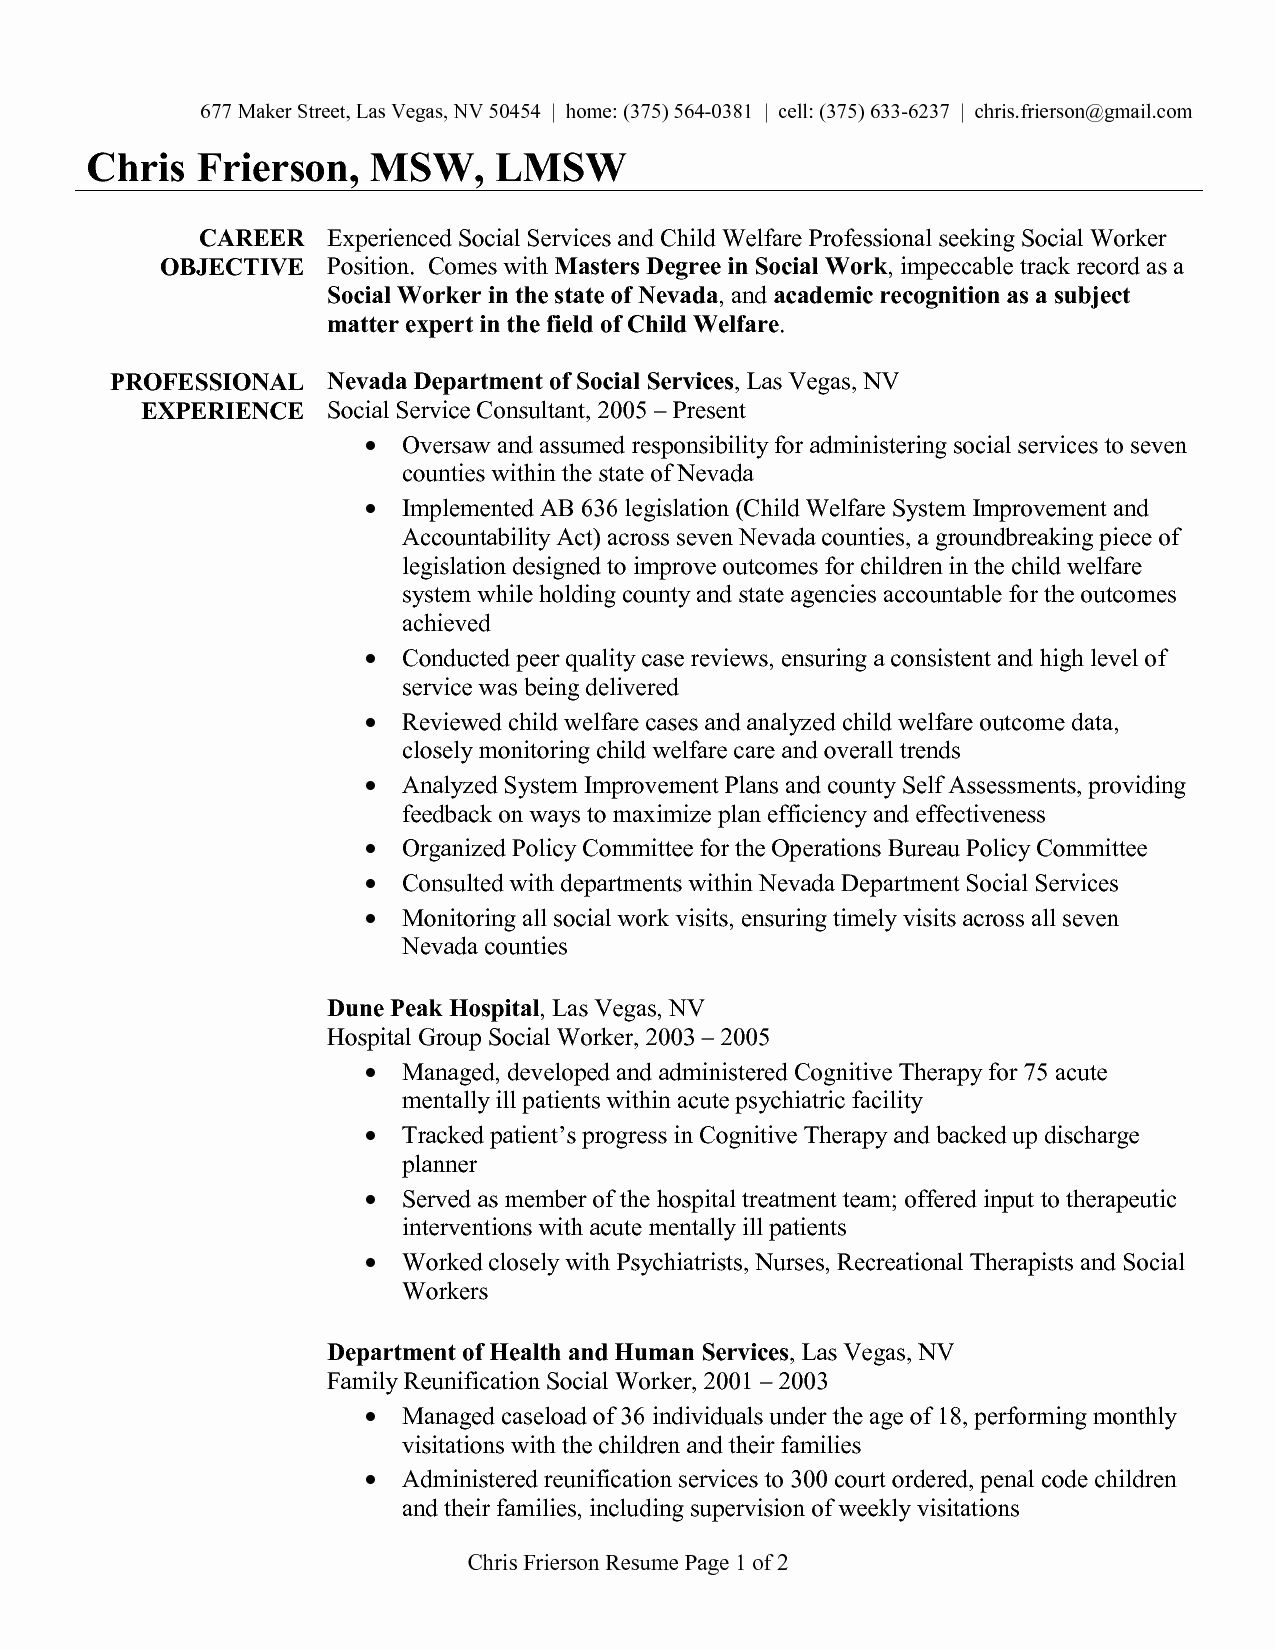 entry level social work resume inspirational examples worker sample proje objective Resume Social Work Resume Examples 2020